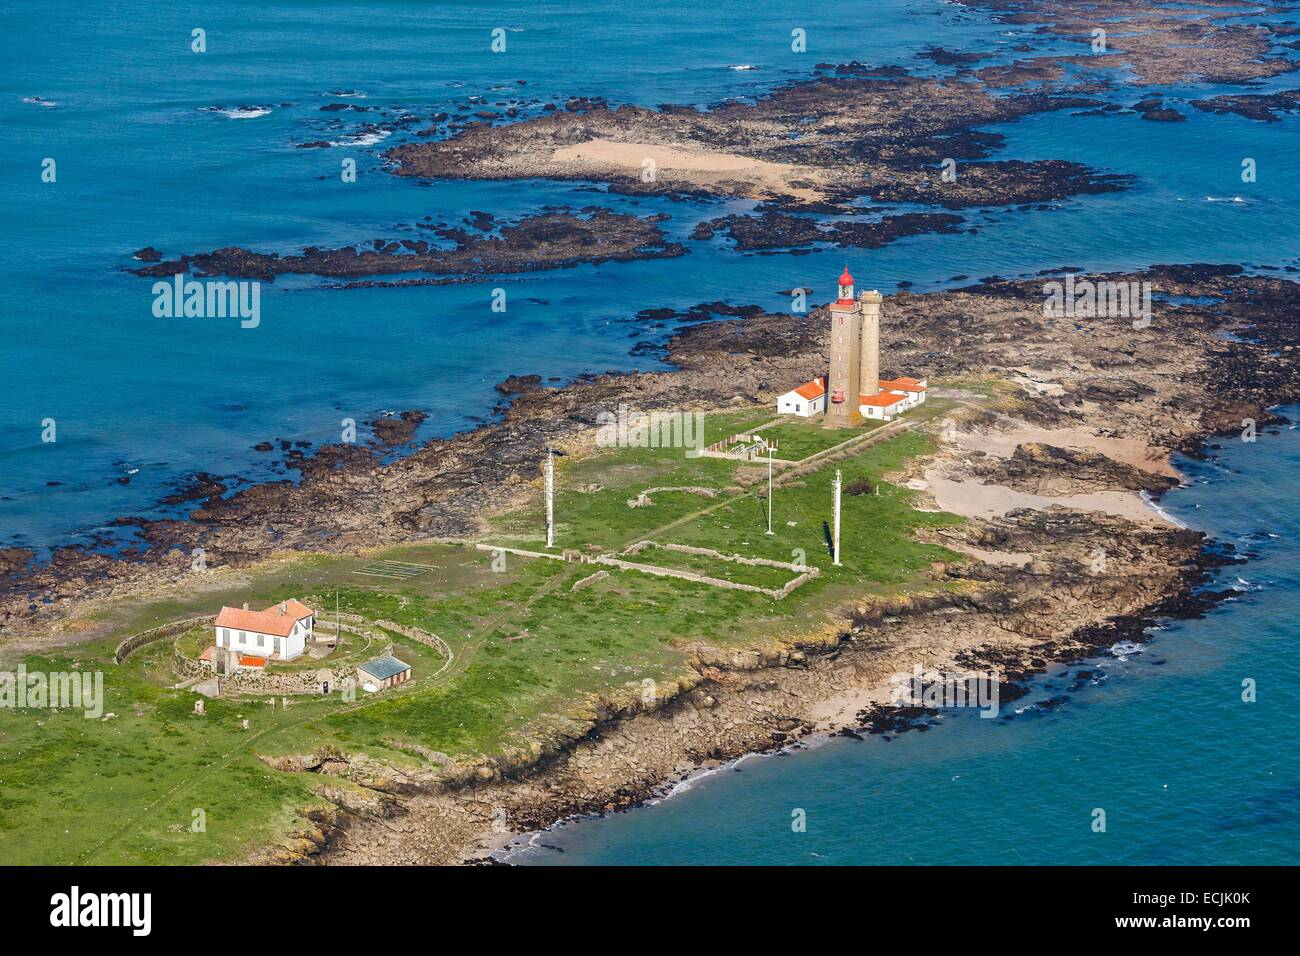 France, Vendee, Ile du Pilier, the semaphore and the lighthouse (aerial view) Stock Photo